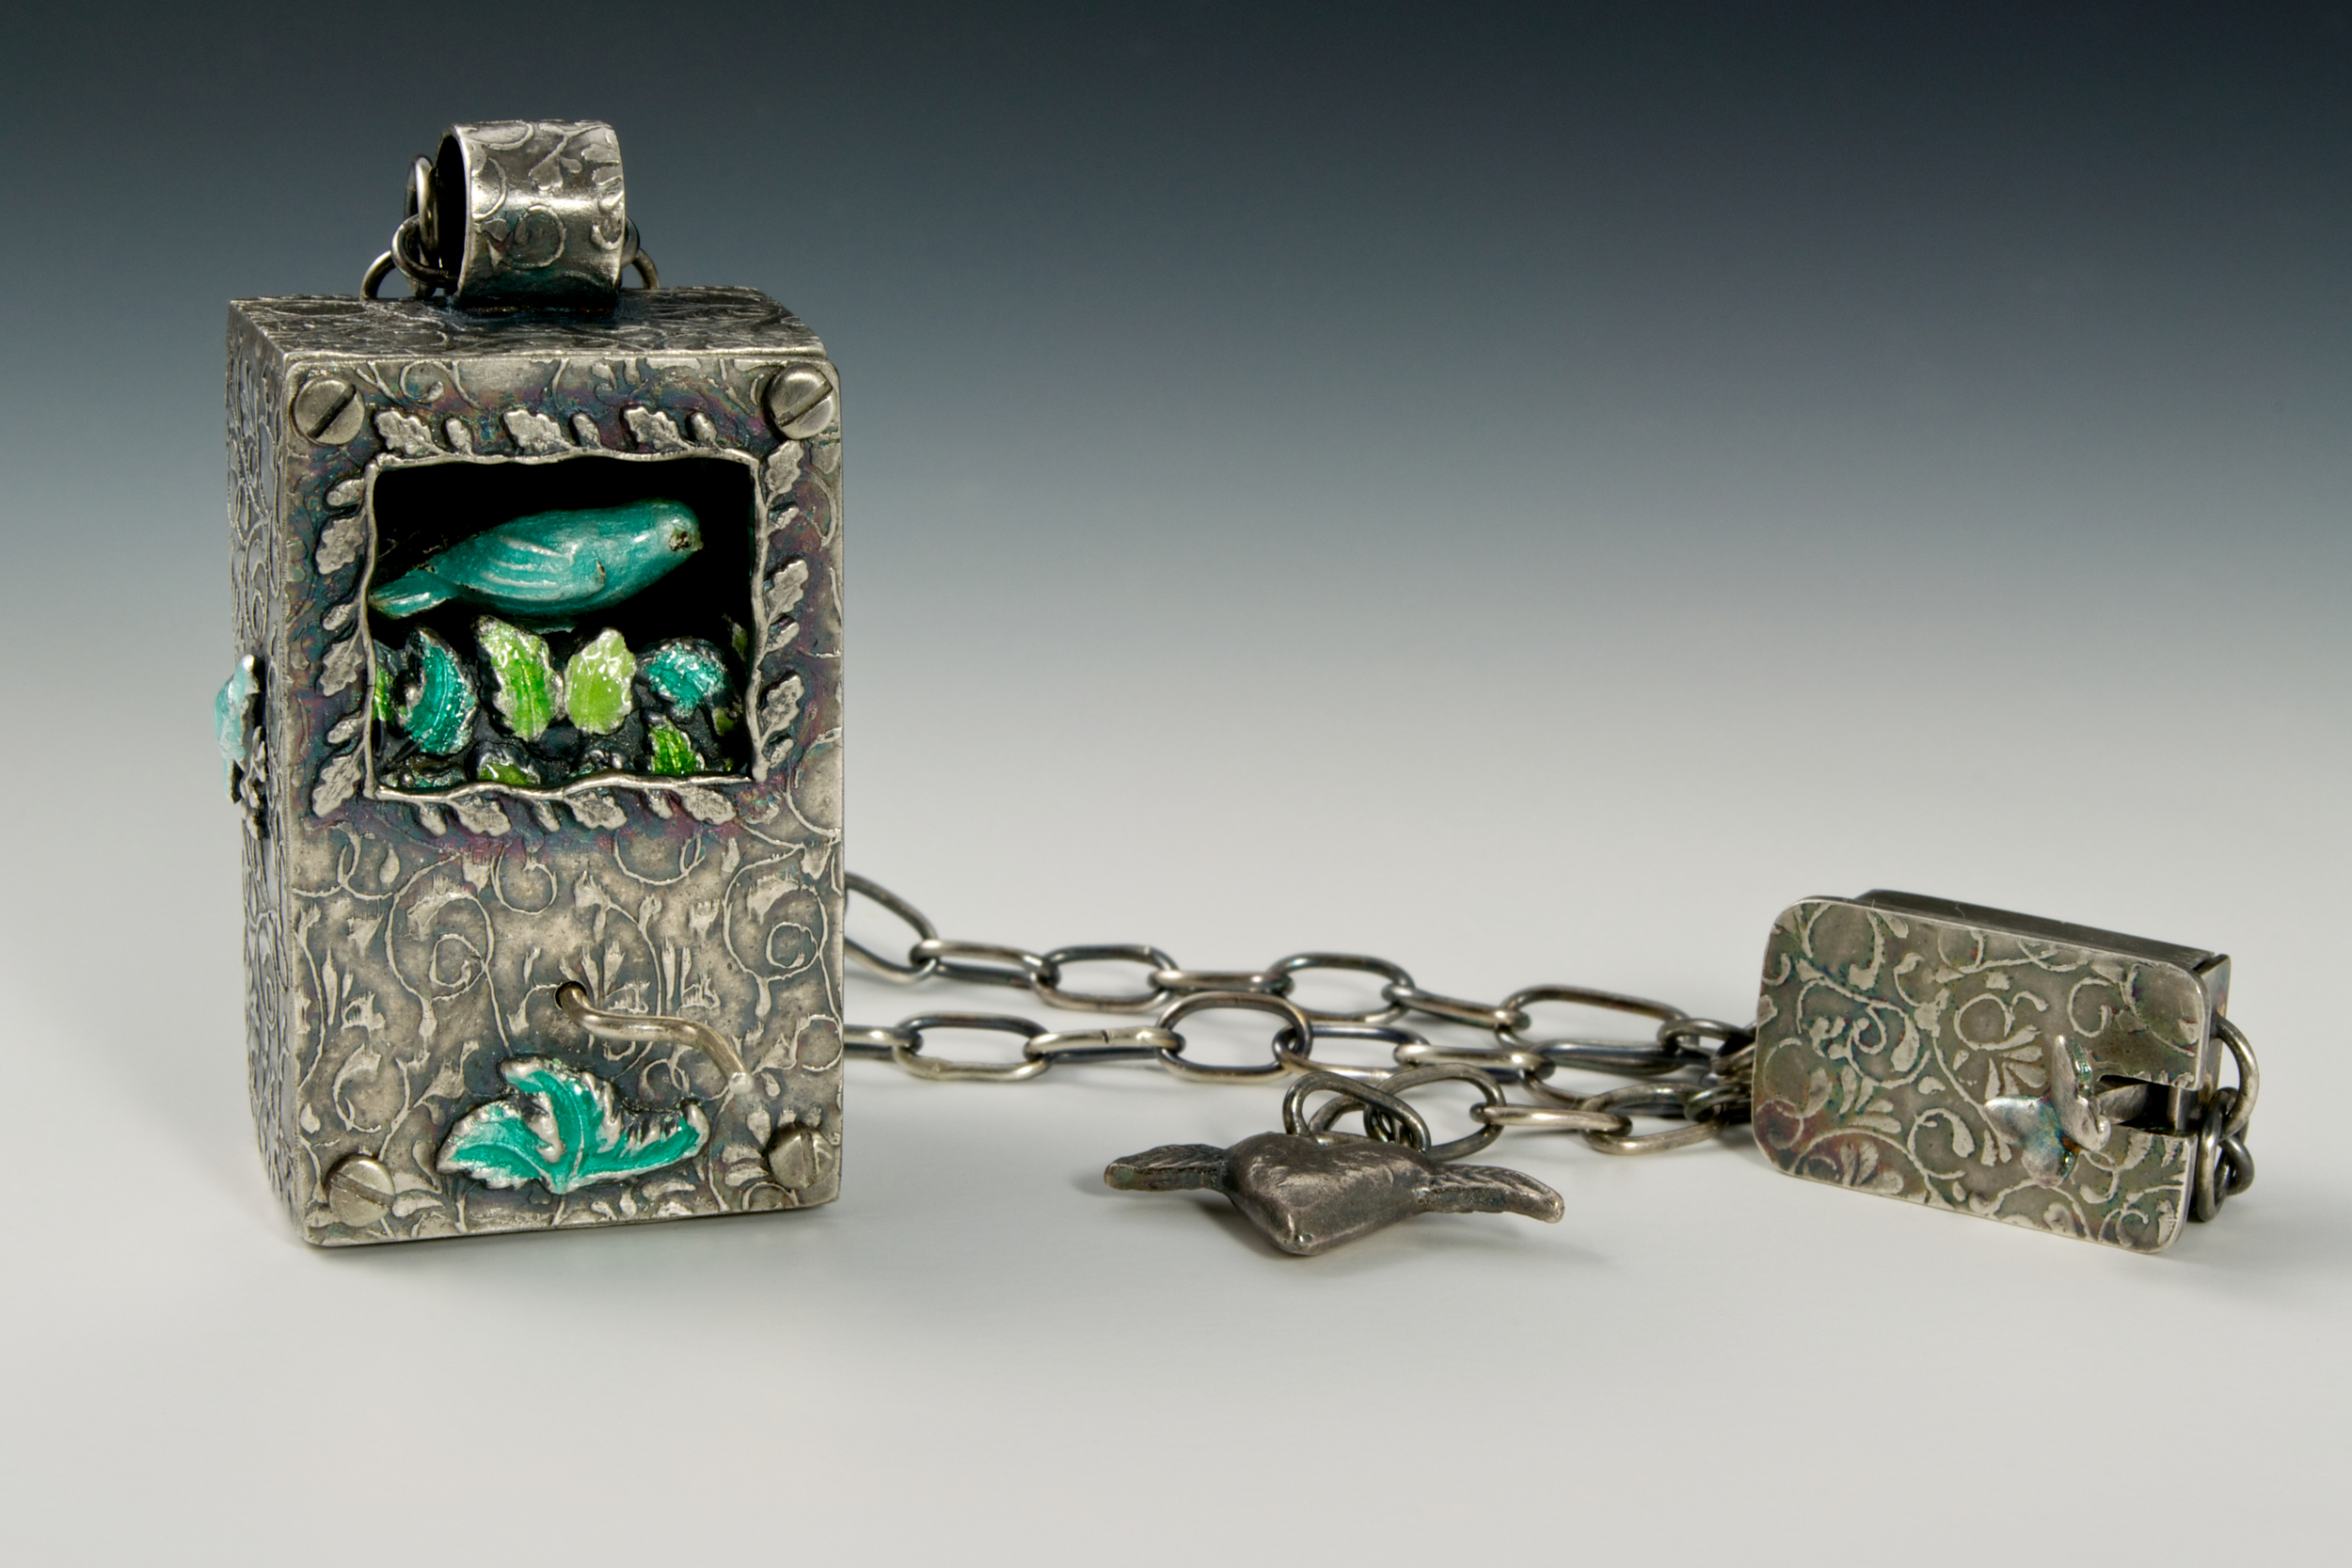 Singing bird  ; silver, bronze, vitreous enamel; fabricated, metal clay, wet packed, handmade chain and box clasp